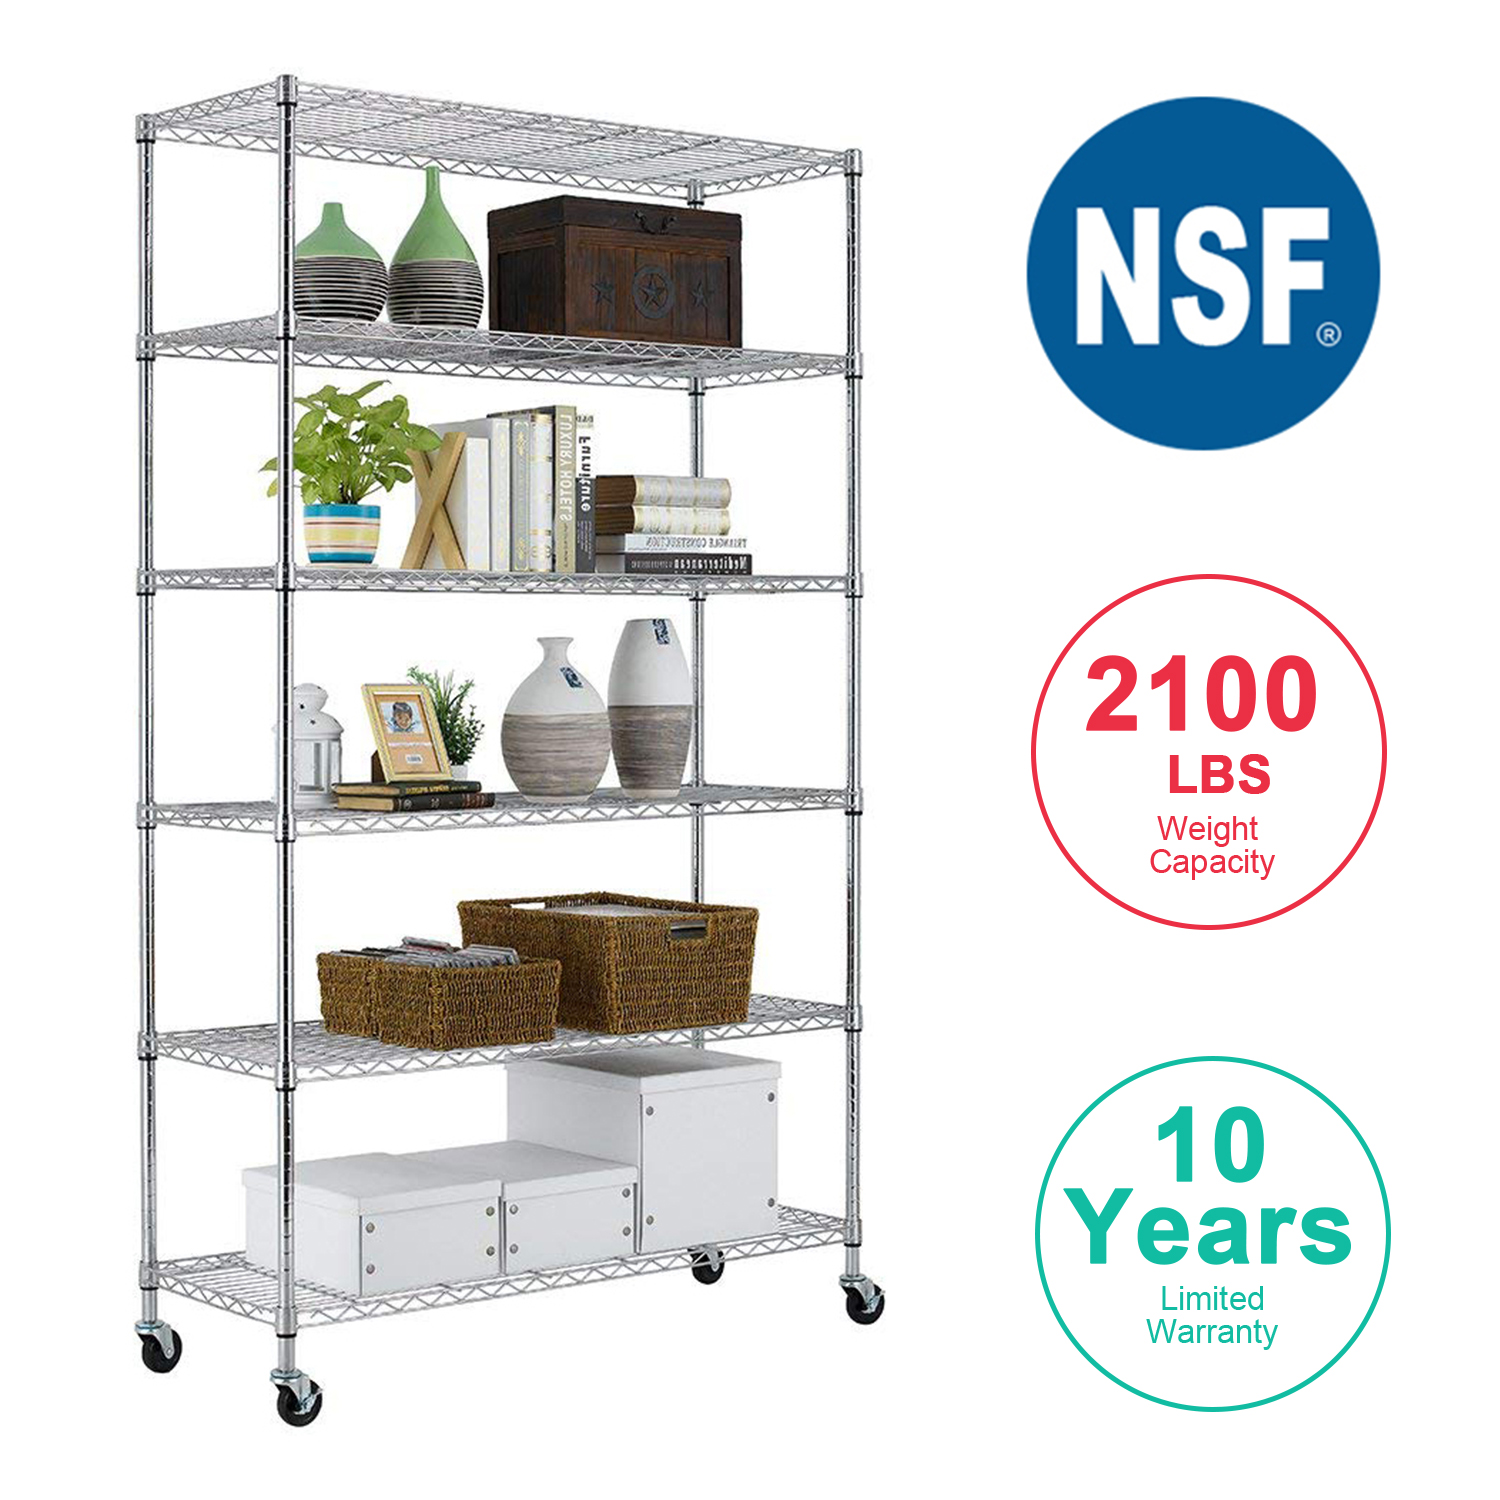 6 Tier Wire Shelving Unit Heavy Duty Height Adjustable NSF Certification  Utility Rolling Steel Commercial Grade With Wheels For Kitchen Bathroom ...